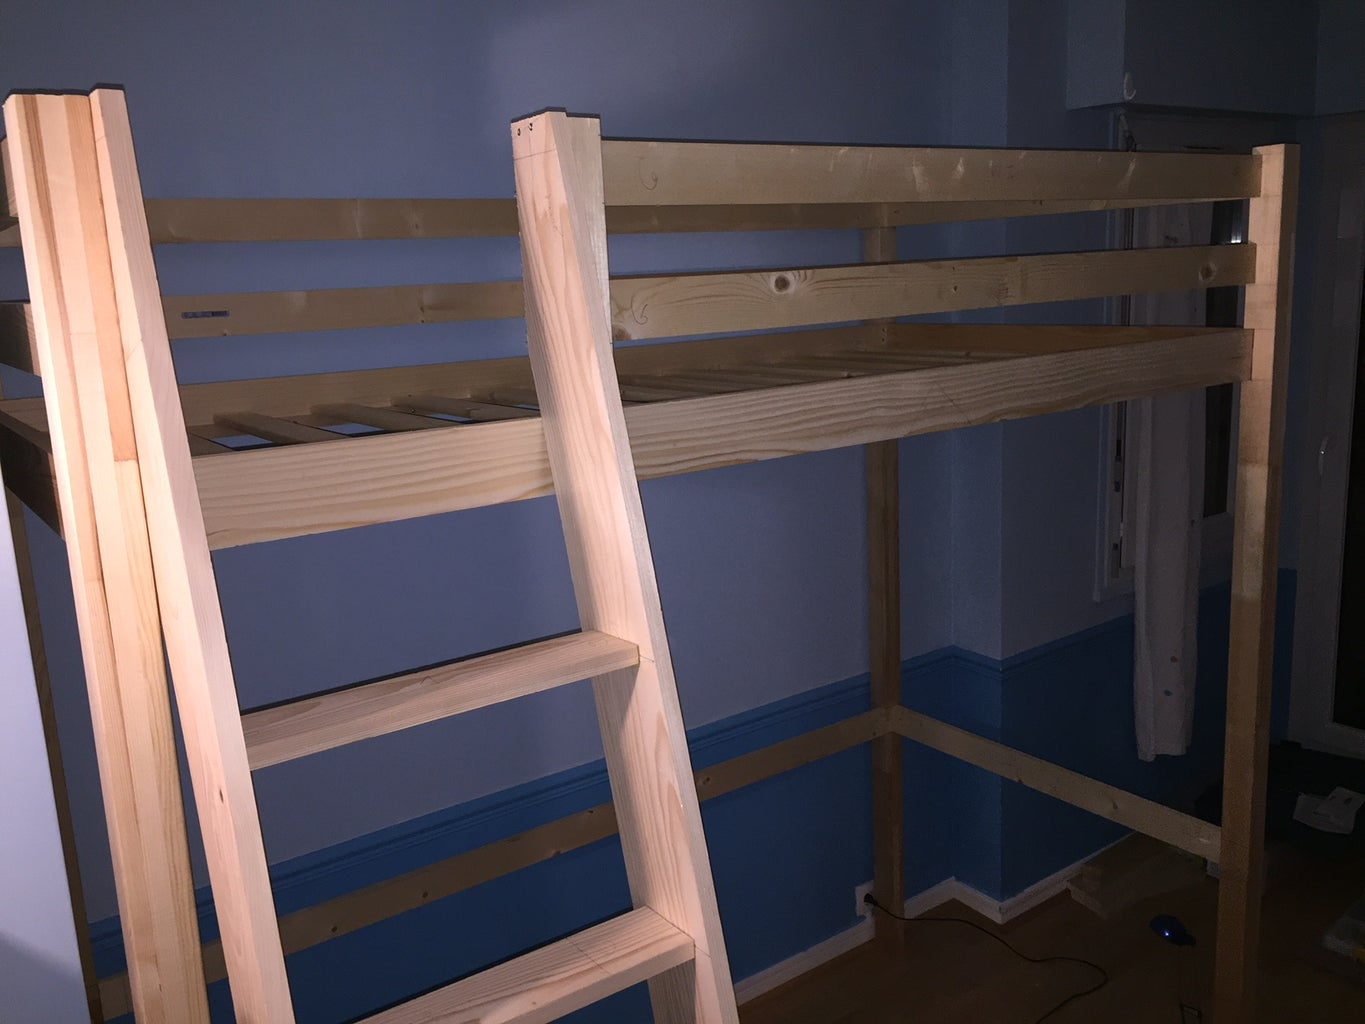 Mezzanine Bed With Frame Inserted Into Posts